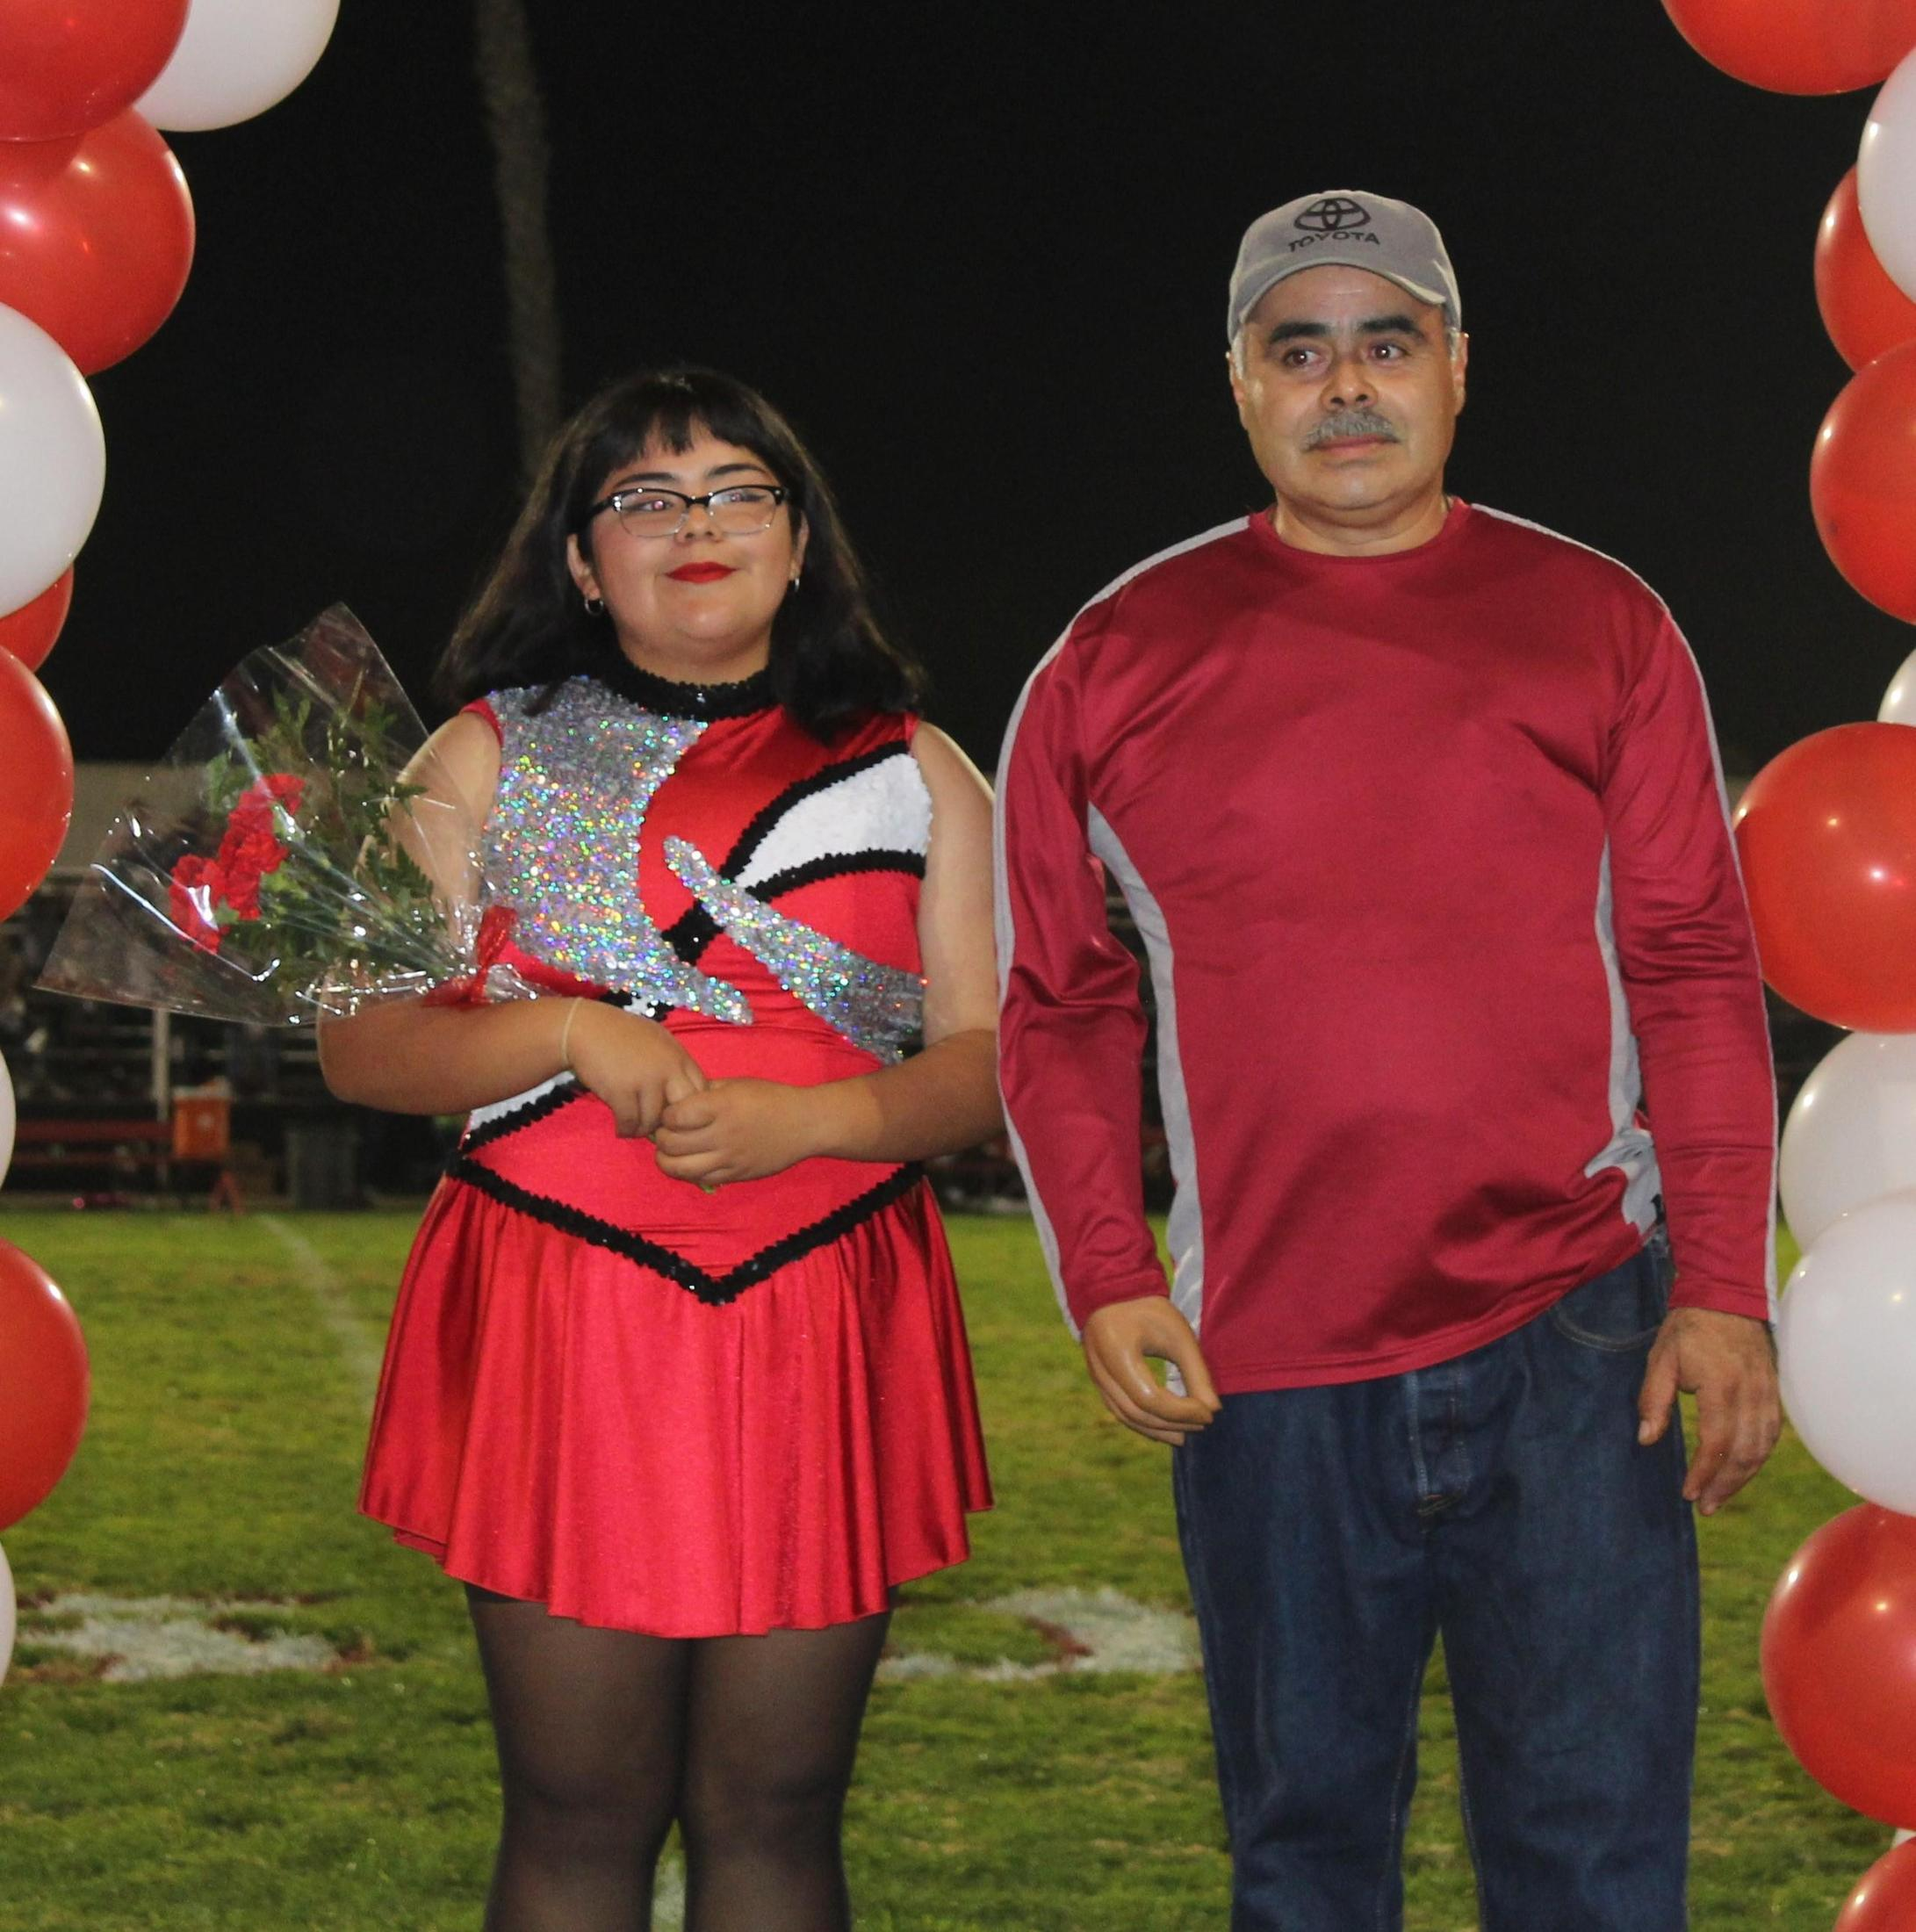 Jessica Morales and her supporters at Senior Night.